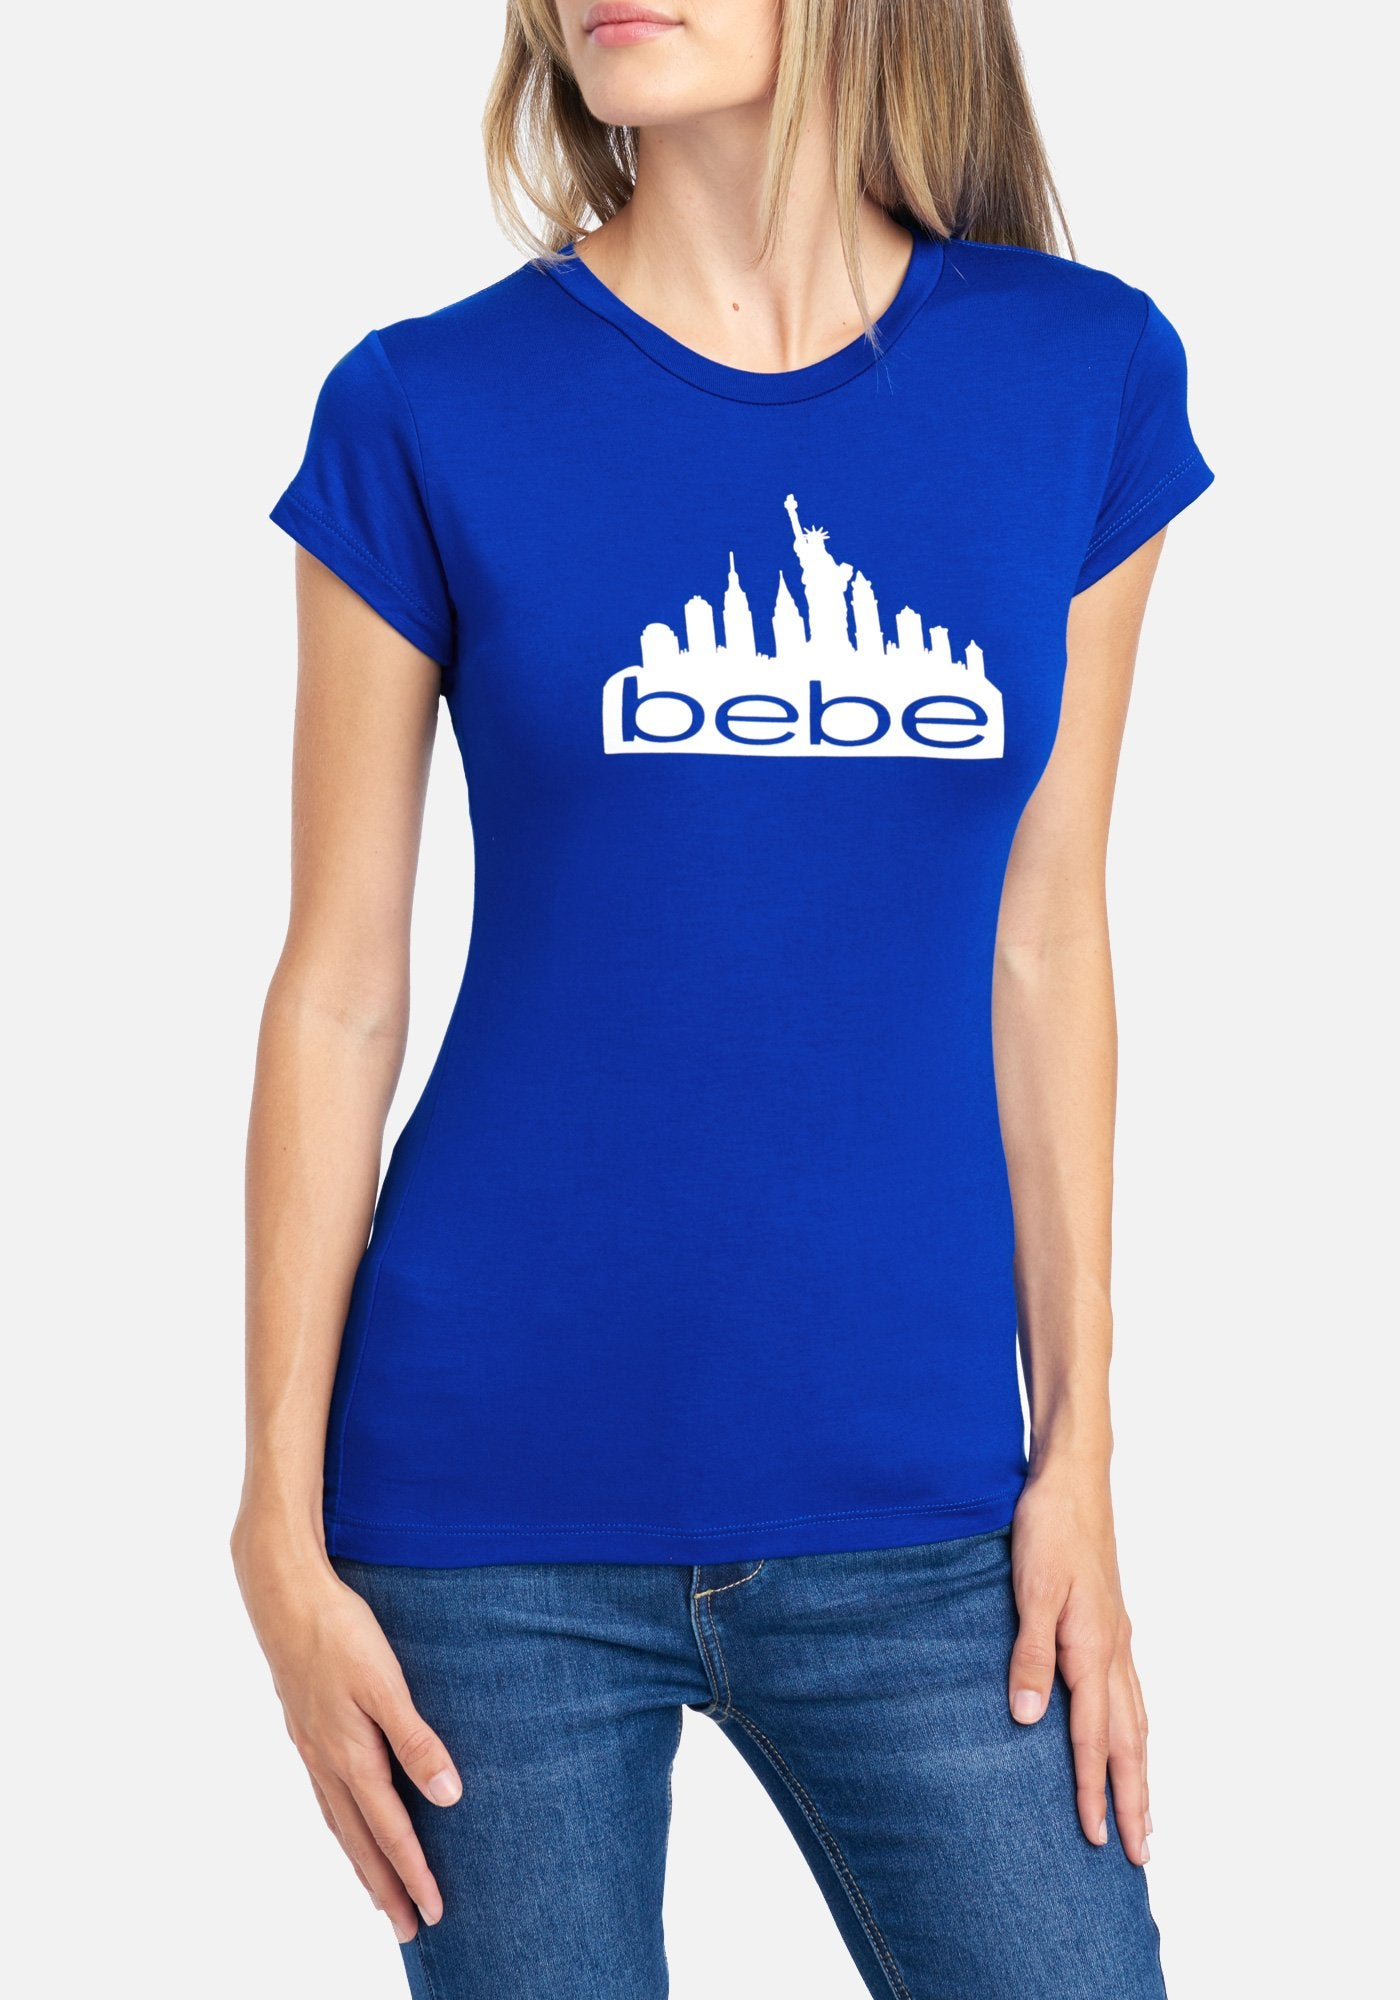 Image of Women's Bebe Logo Ny Screen Tee Shirt, Size XL in Surf The Web Spandex